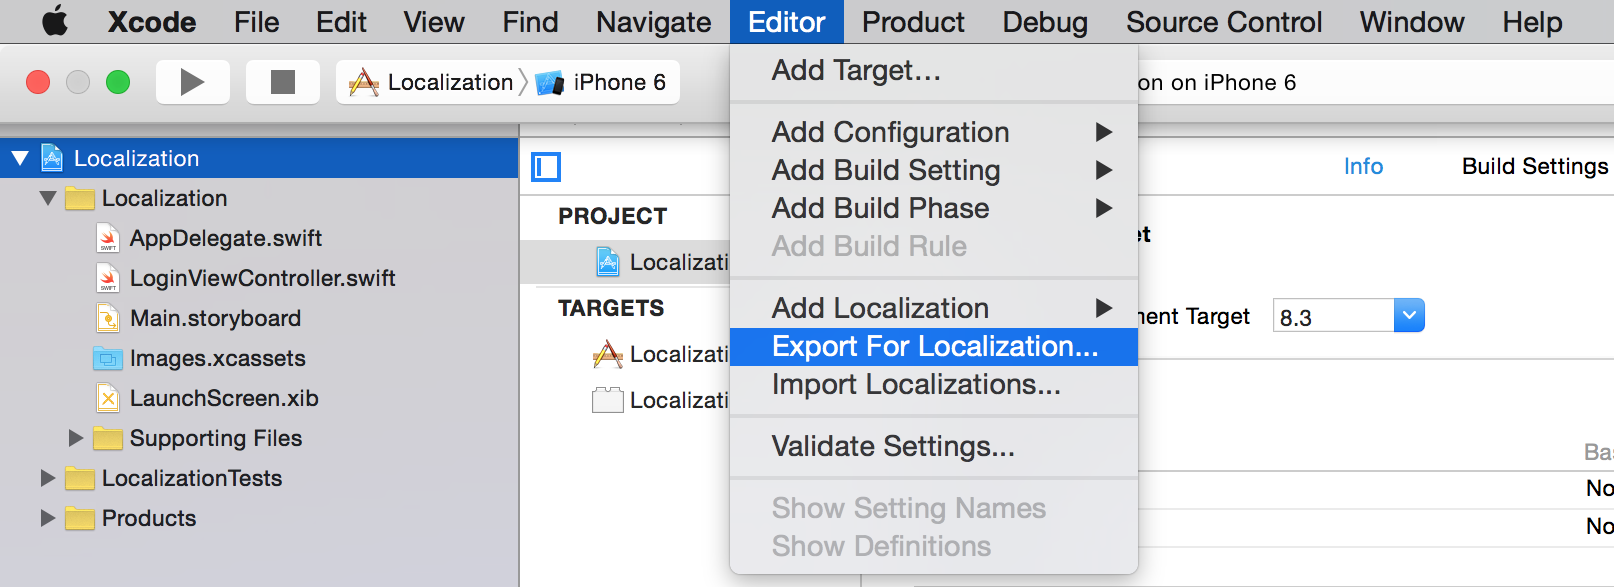 Export for Localizations